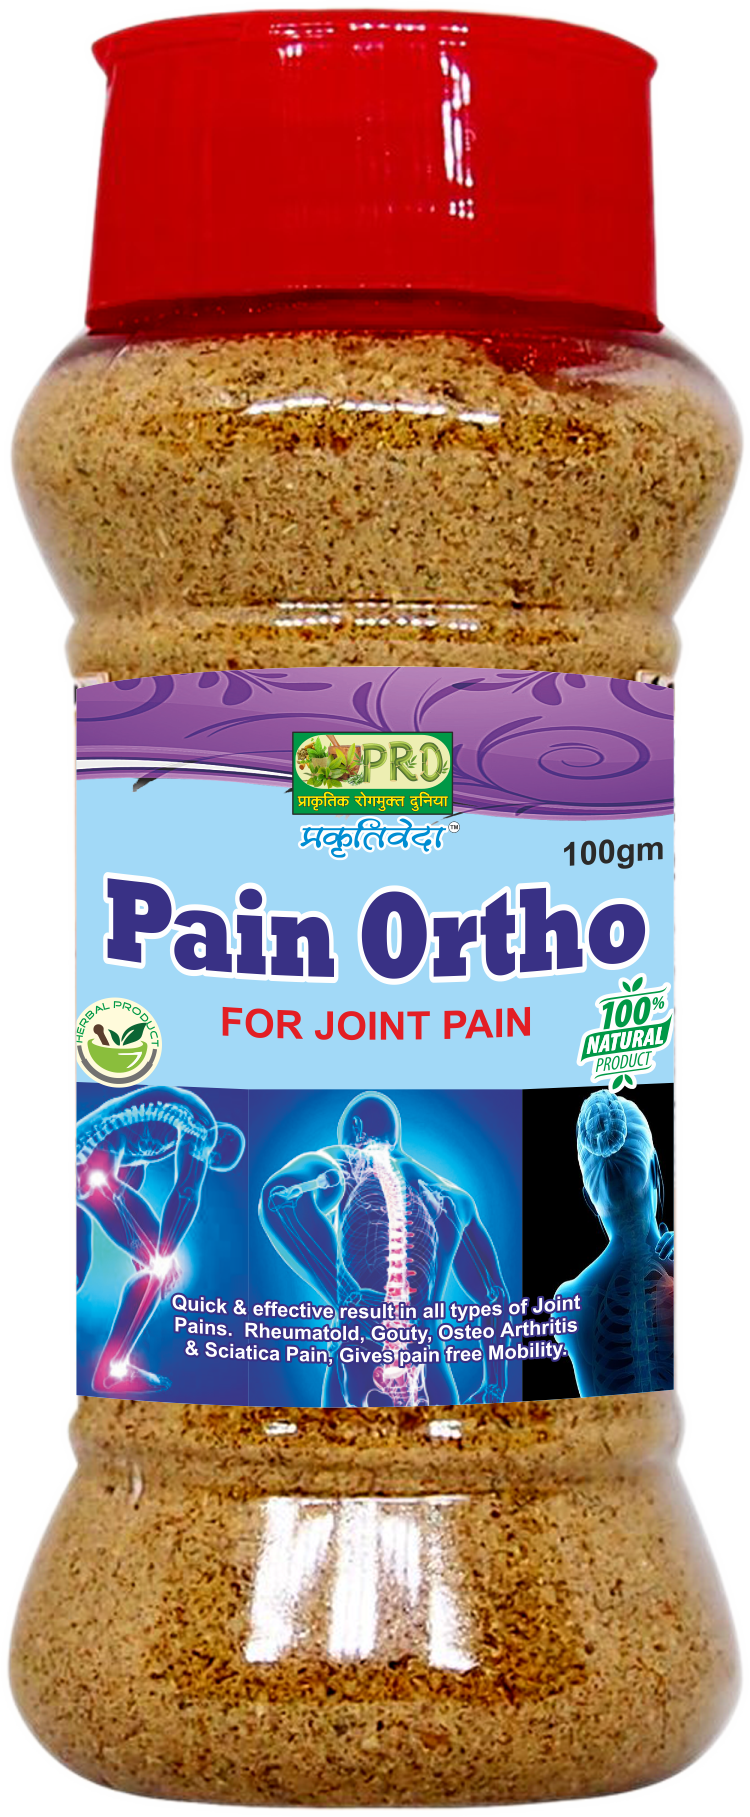 PAIN ORTHO POWDER